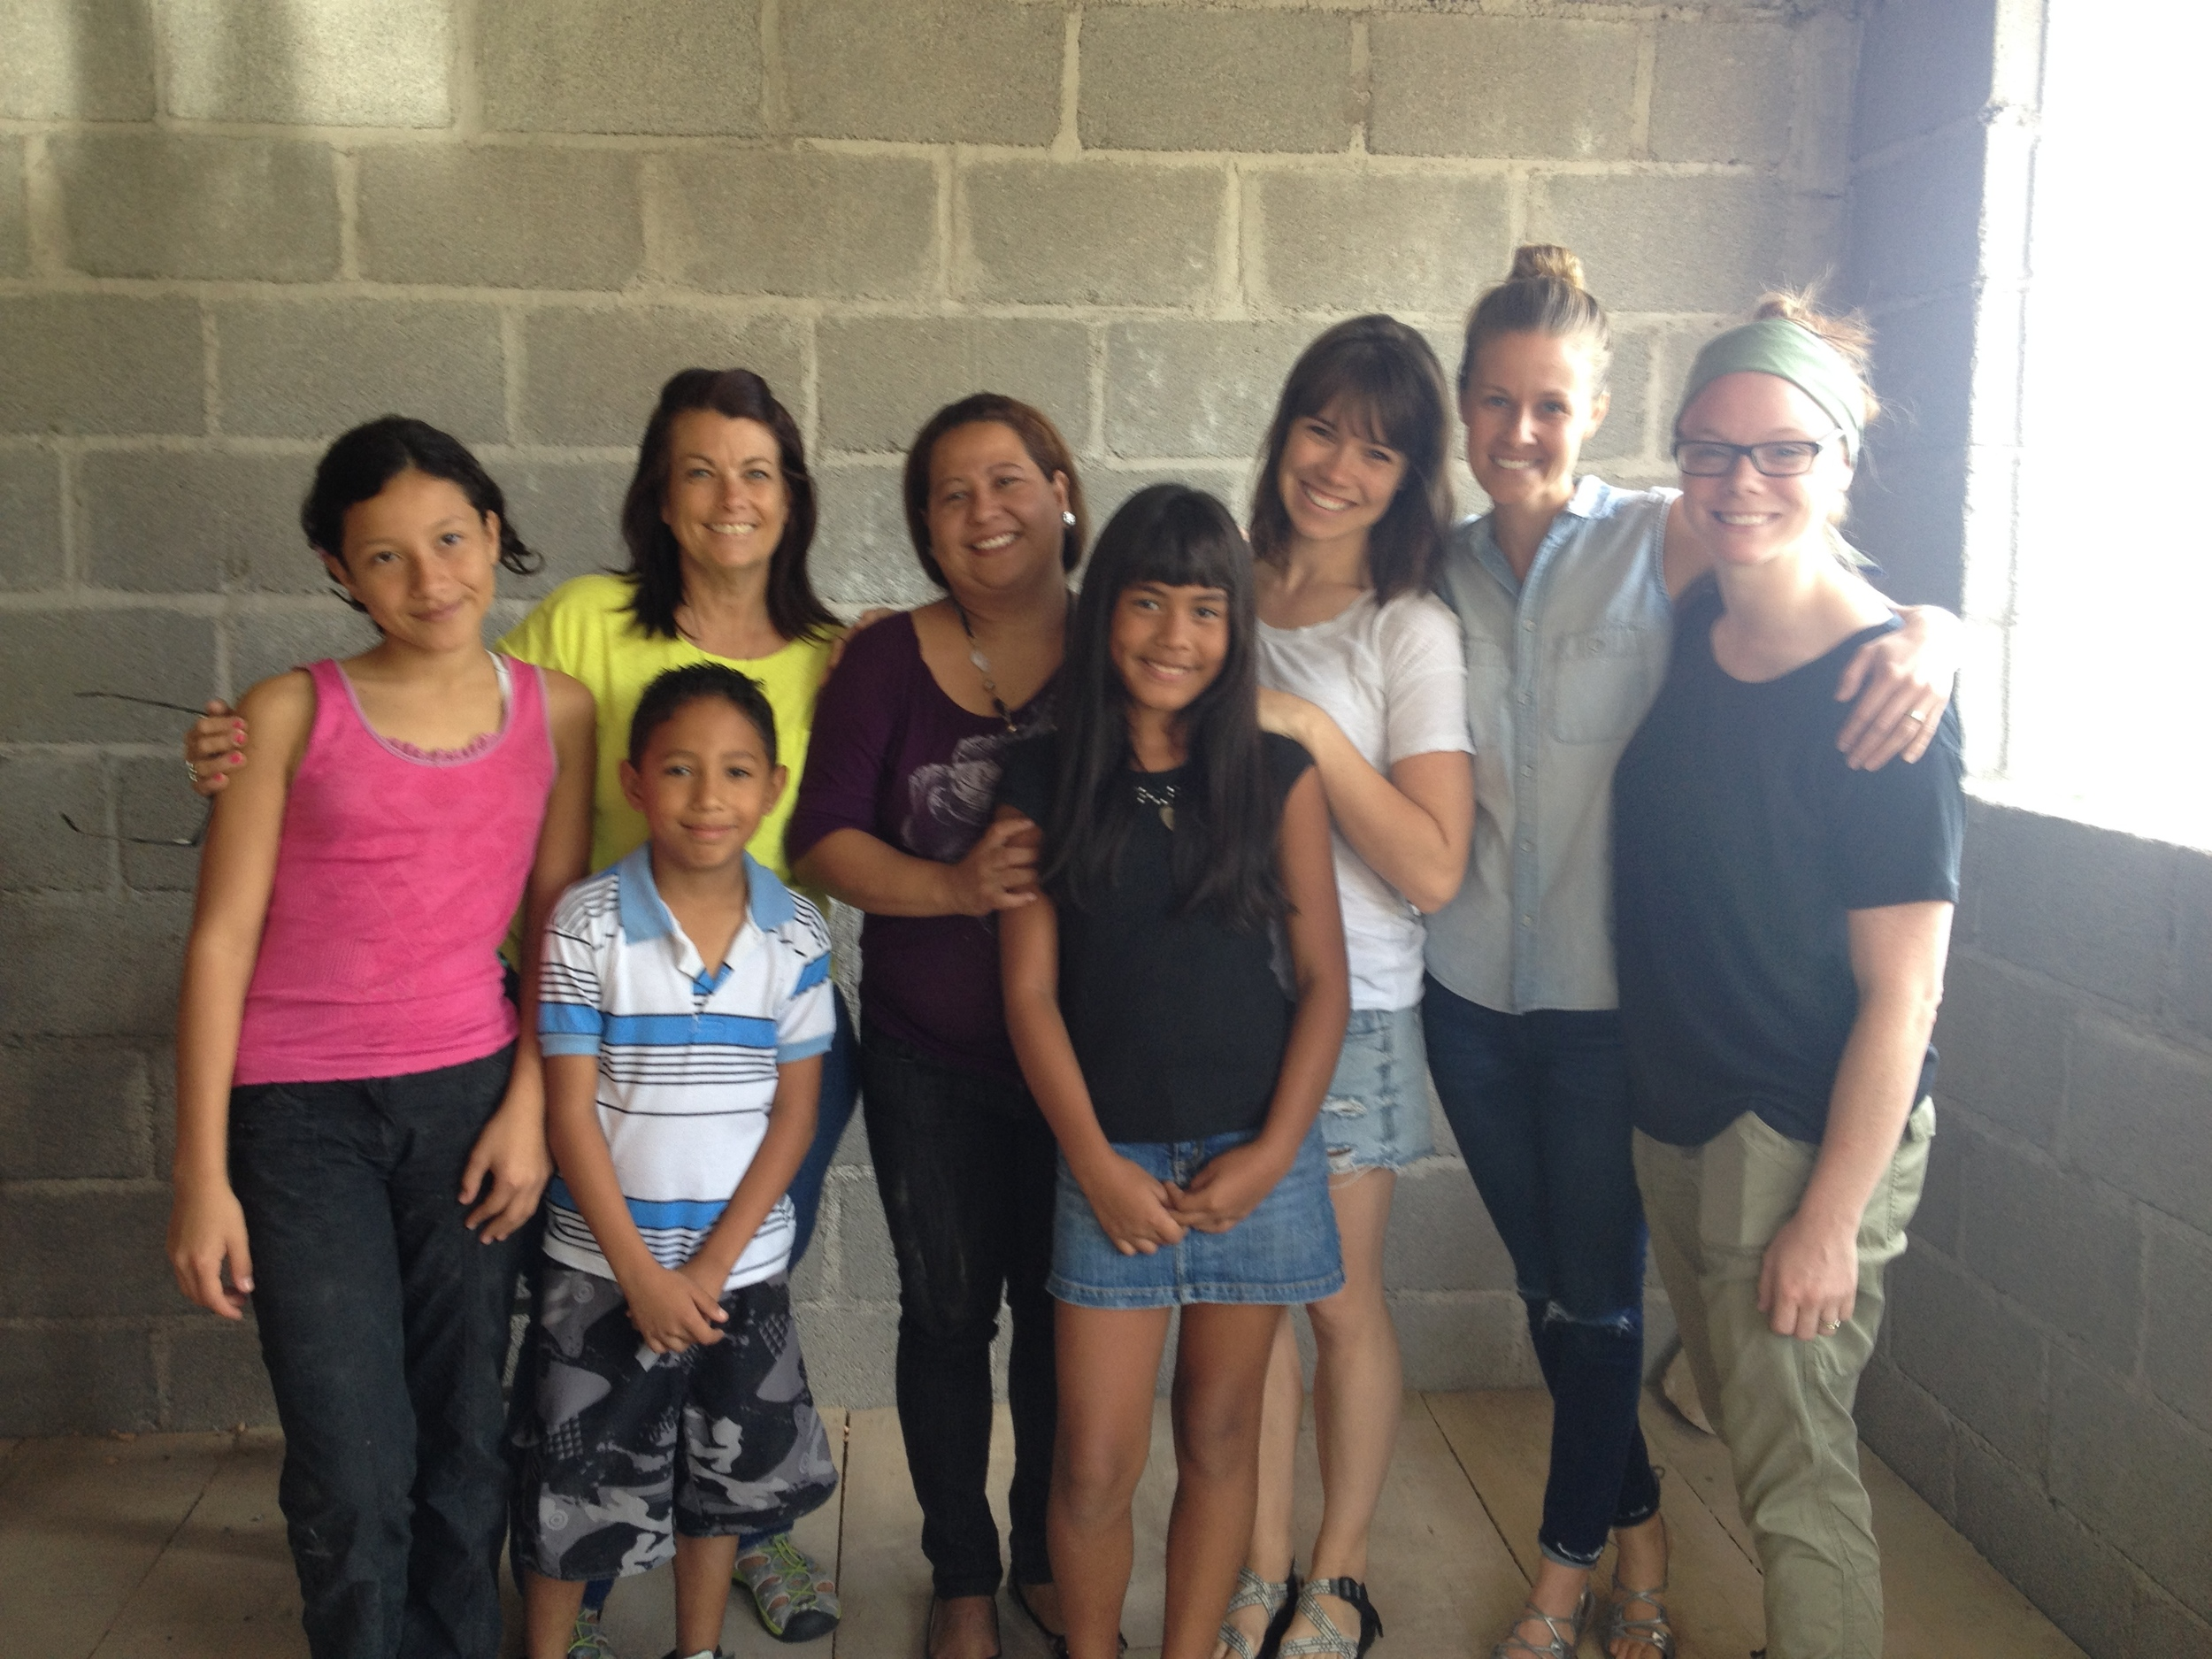 August '14 during a sight visit made by co-founder Lori Connell to see the progress on the salon renovations and sharing Gabriela's story with vistitors